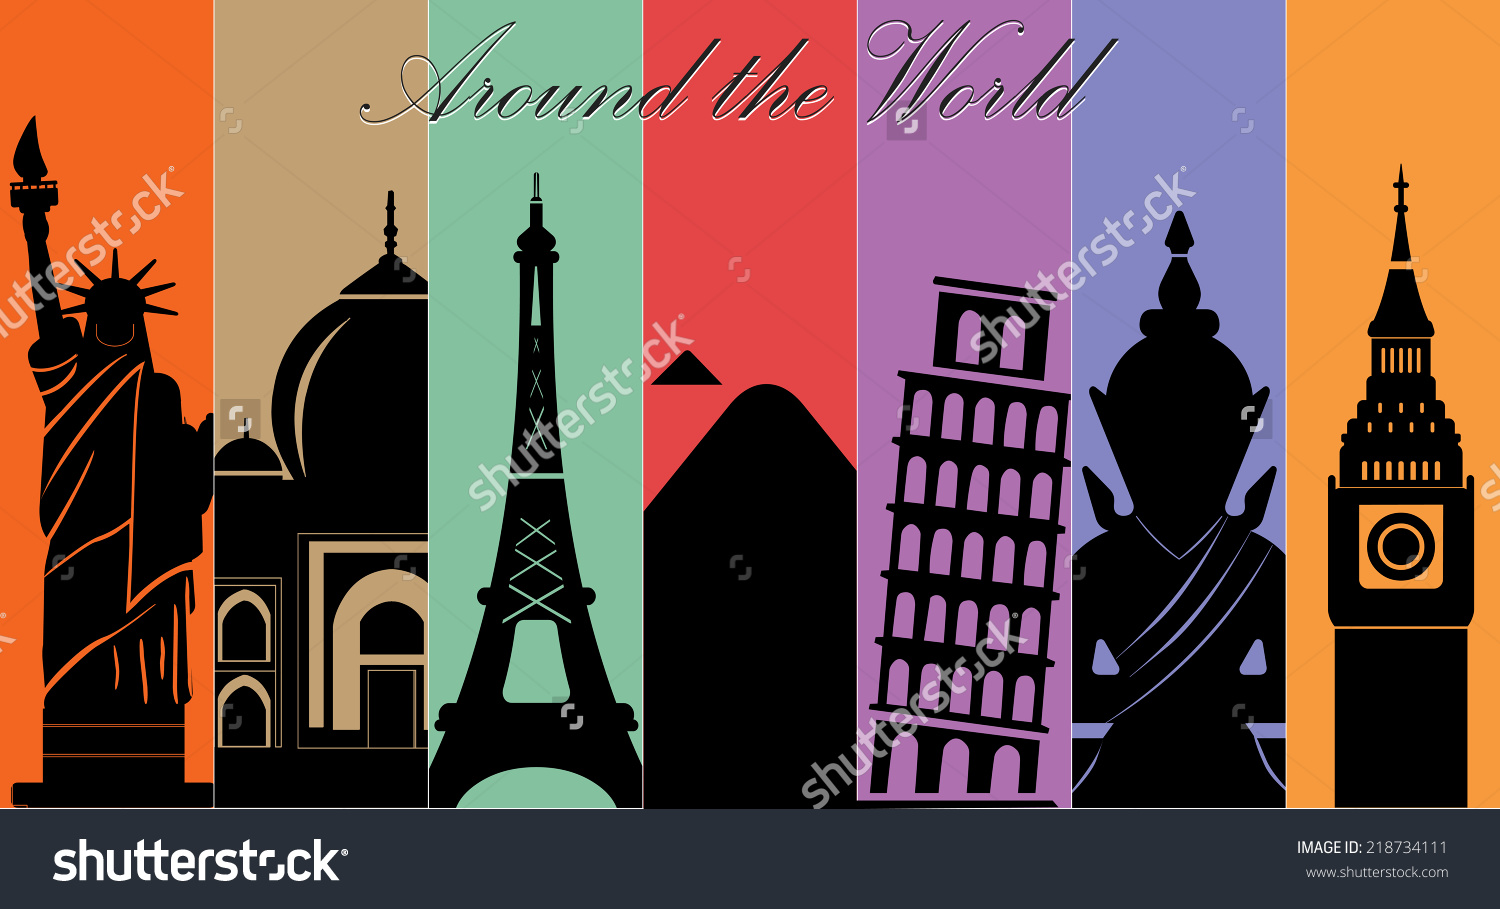 Travel Around The World Clipart Seven Wonders Of And Tourism.